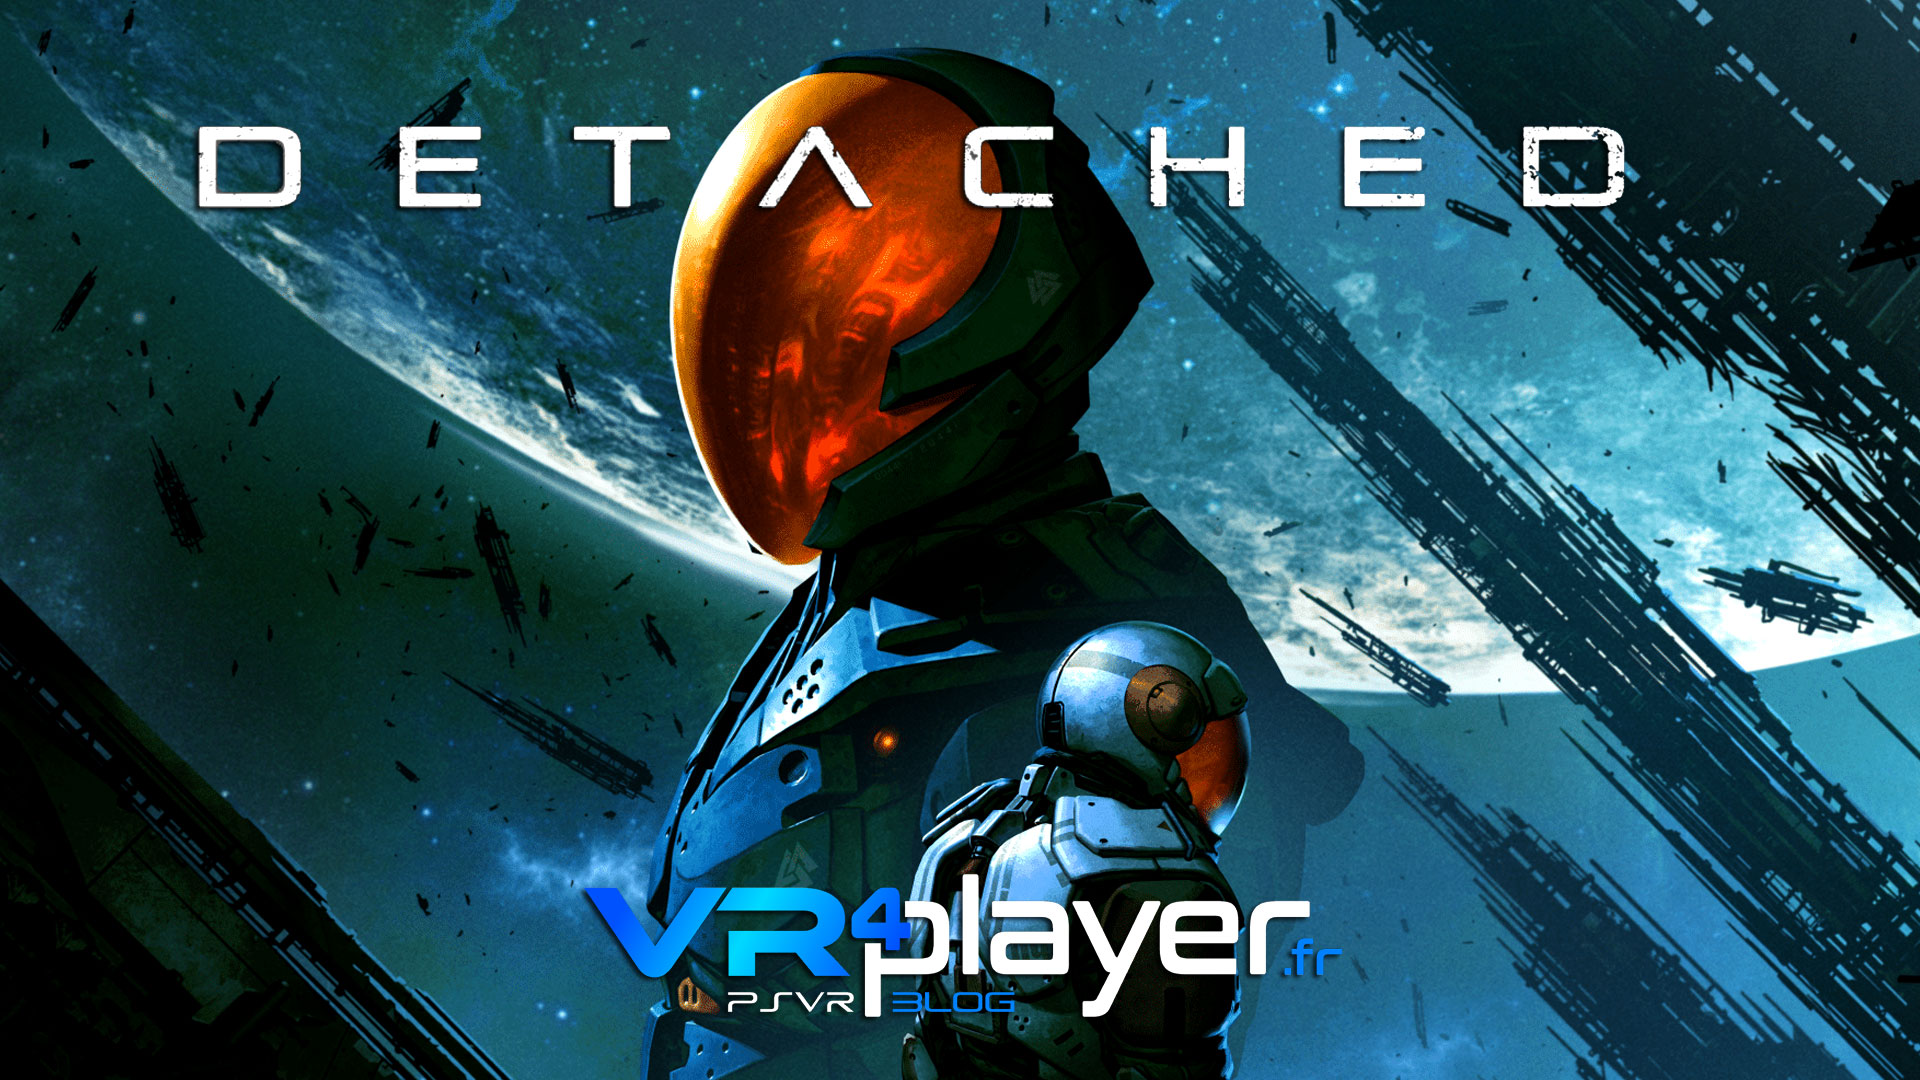 DETACHED sur PSVR vr4player.fr